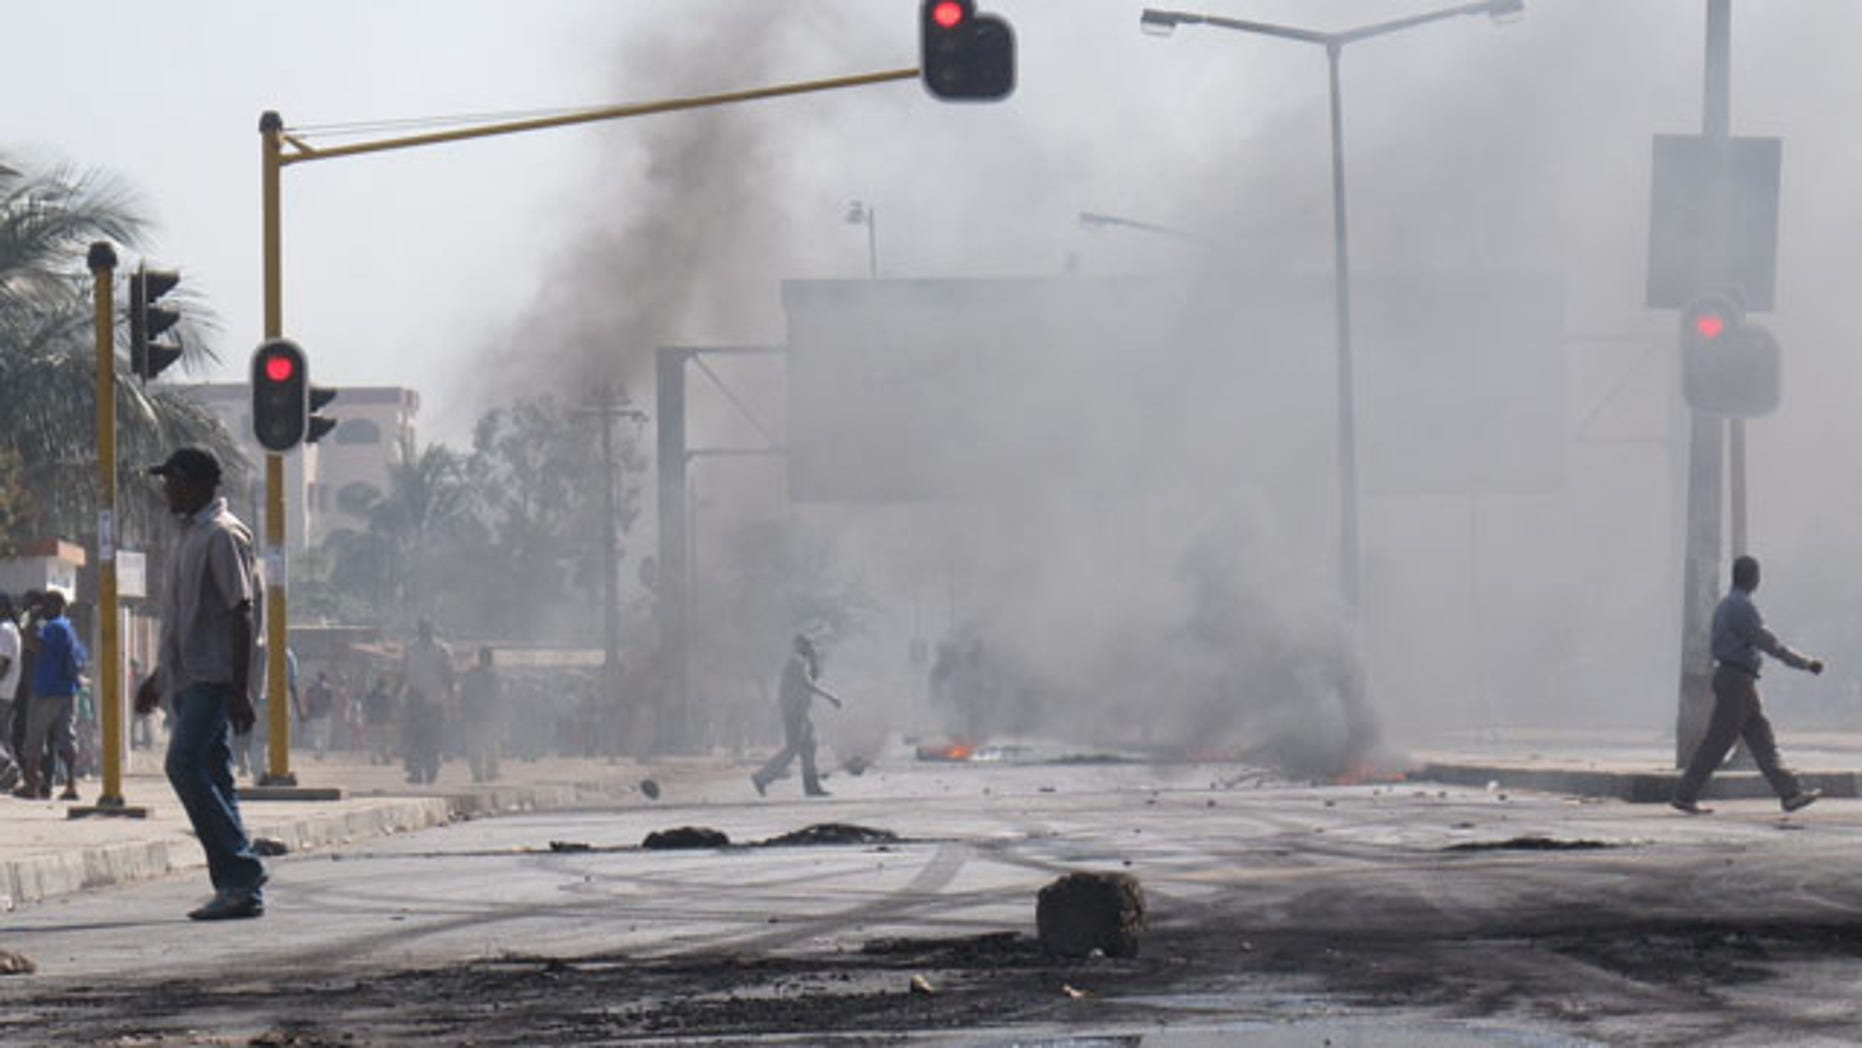 September 1: People walk past barricades of burning tires in Maputo, Mozambique after police opened fire on stone-throwing crowds who were protesting rising prices in this impoverished country. (AP)